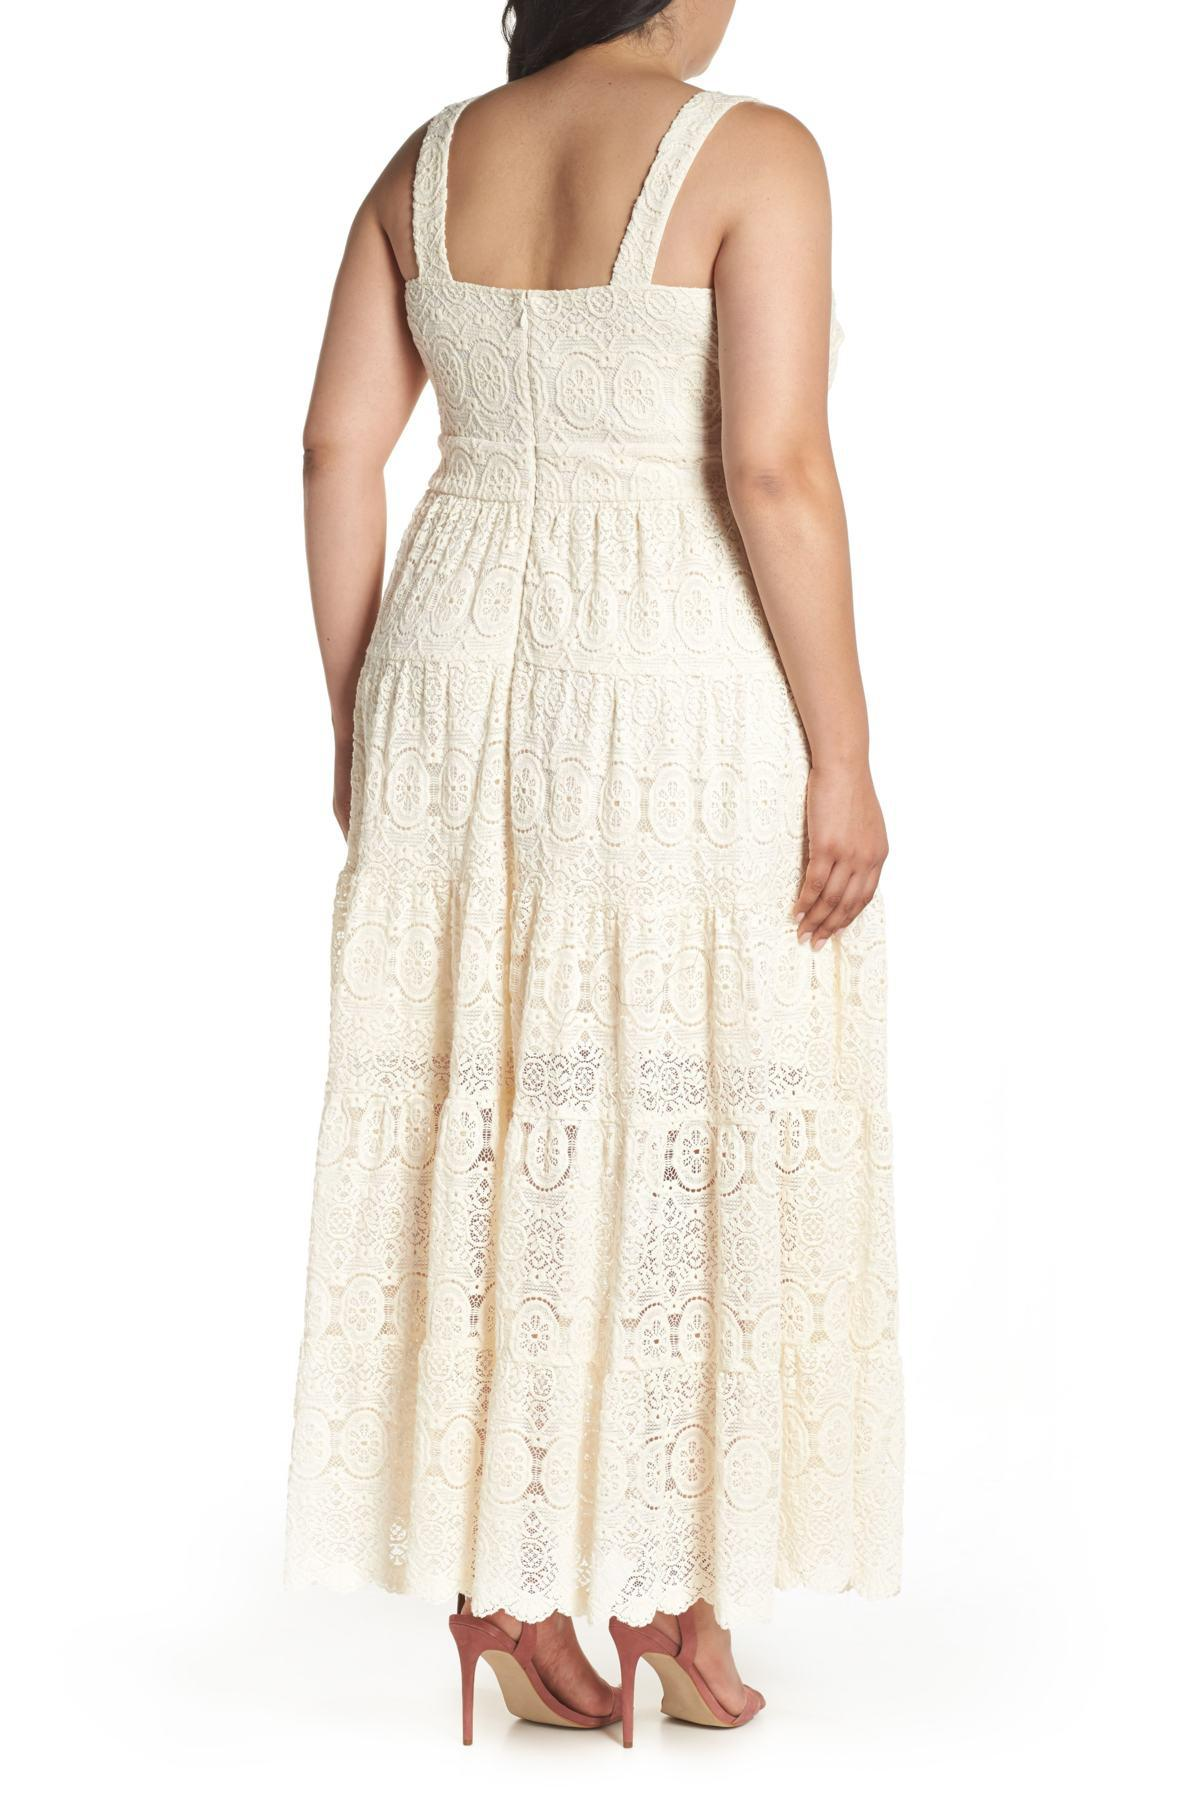 Eliza J Tiered Lace Maxi Dress Plus Size In White Lyst